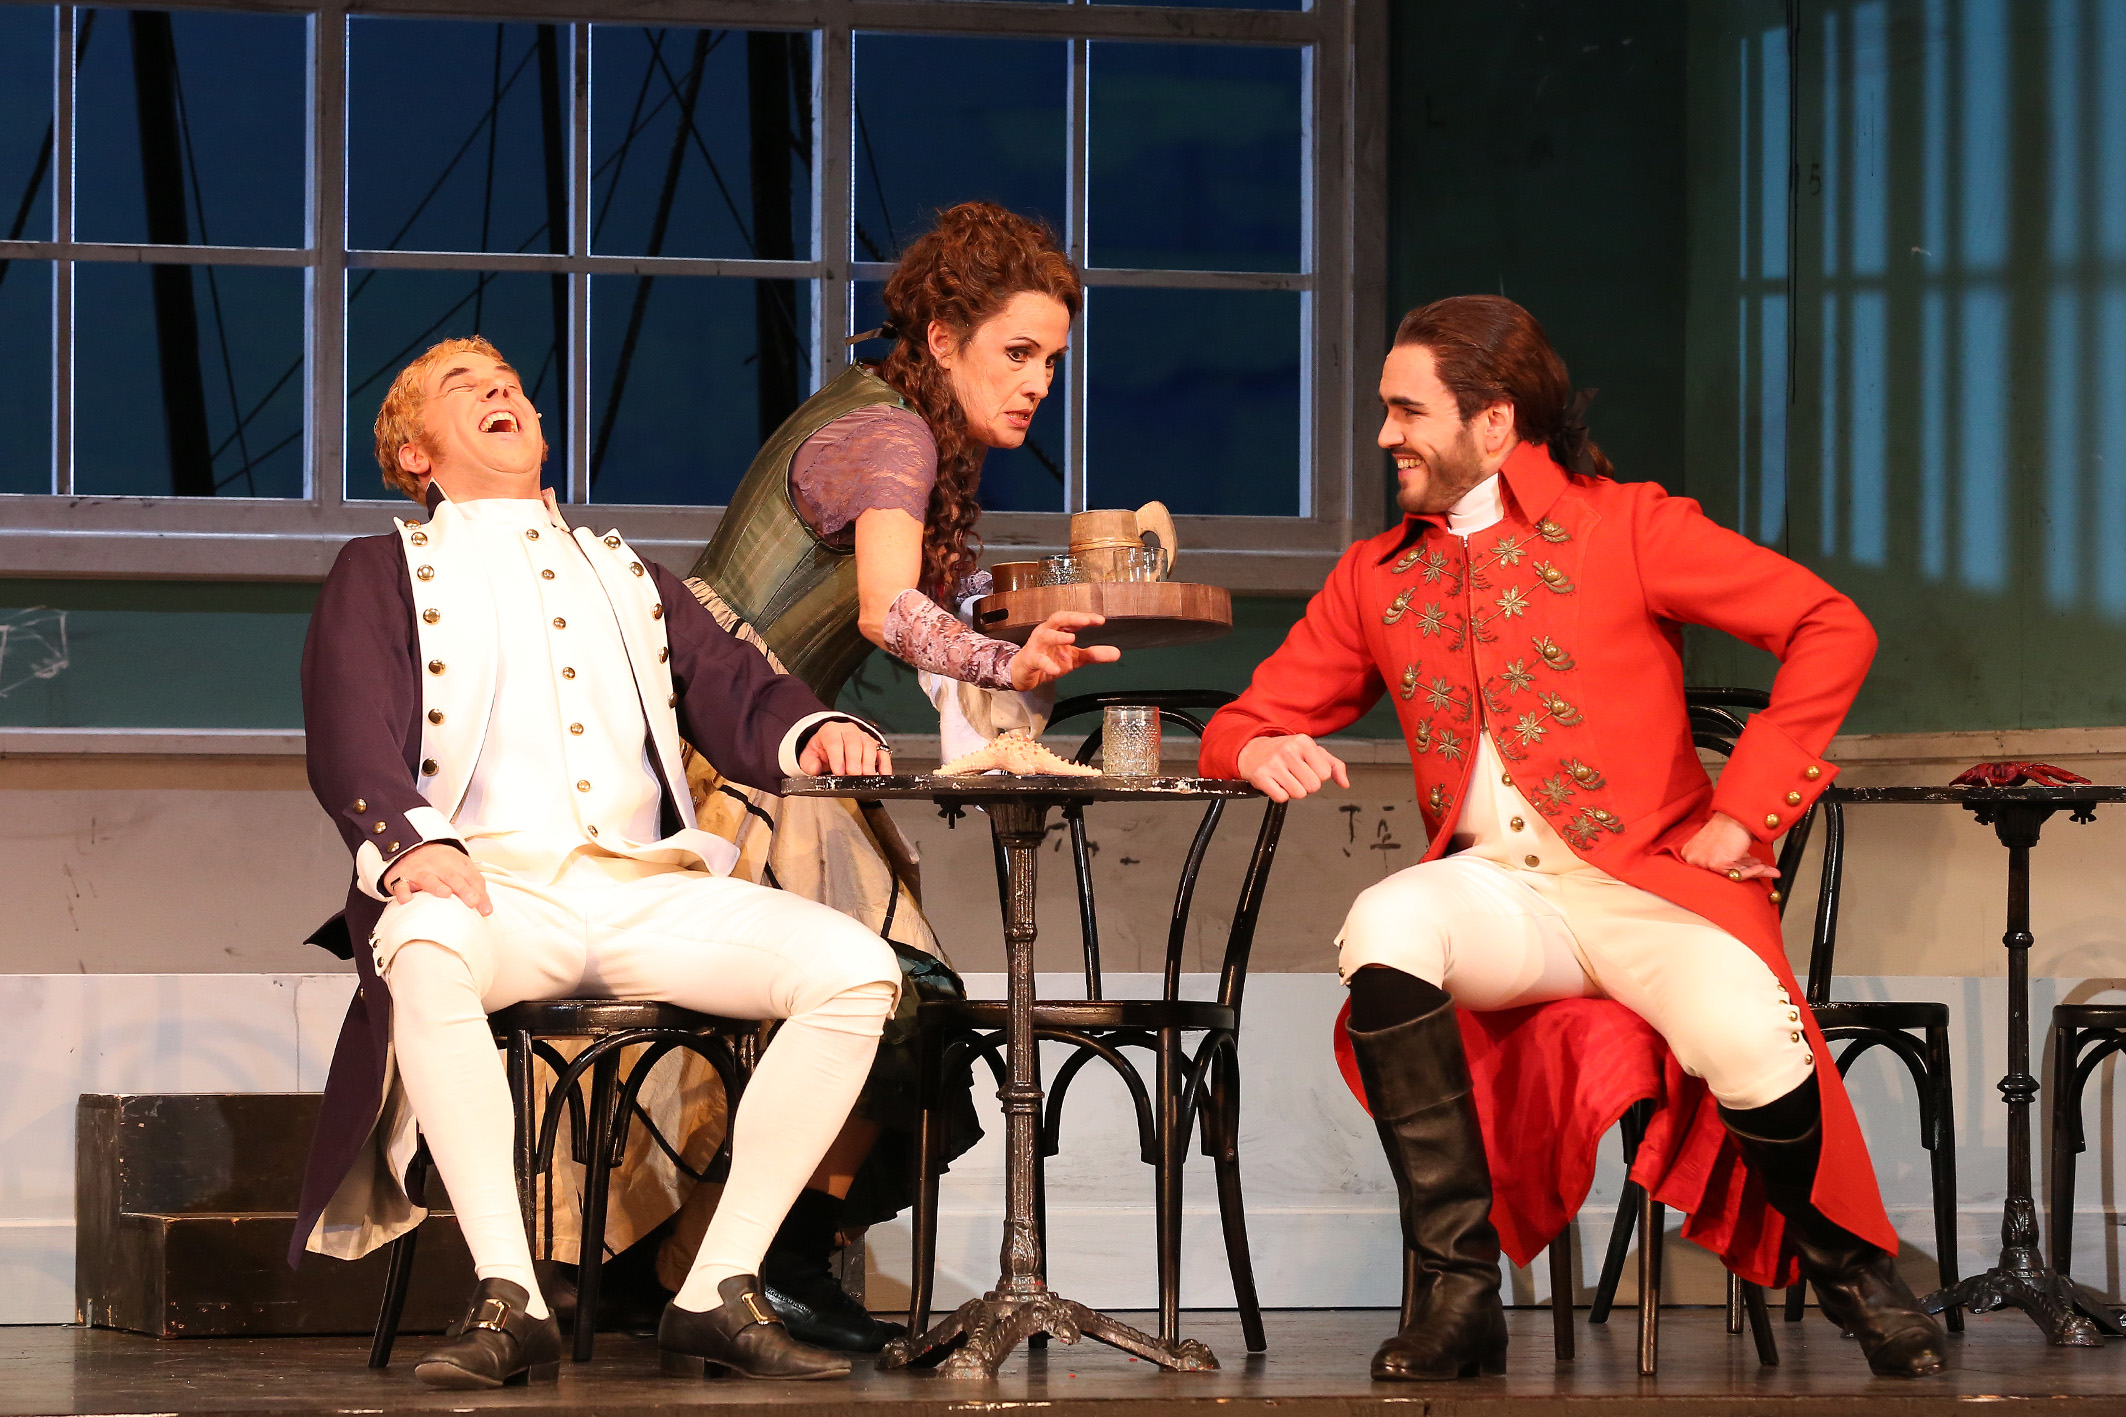 "David Ameln (as Percy Harwich), Christel Ortmann (as Mary Ann), Rodrigo Porras Garulo (as Don Alfredo Bartos) in ""Lady Hamilton."" (Photo: Claudia Heysel)"